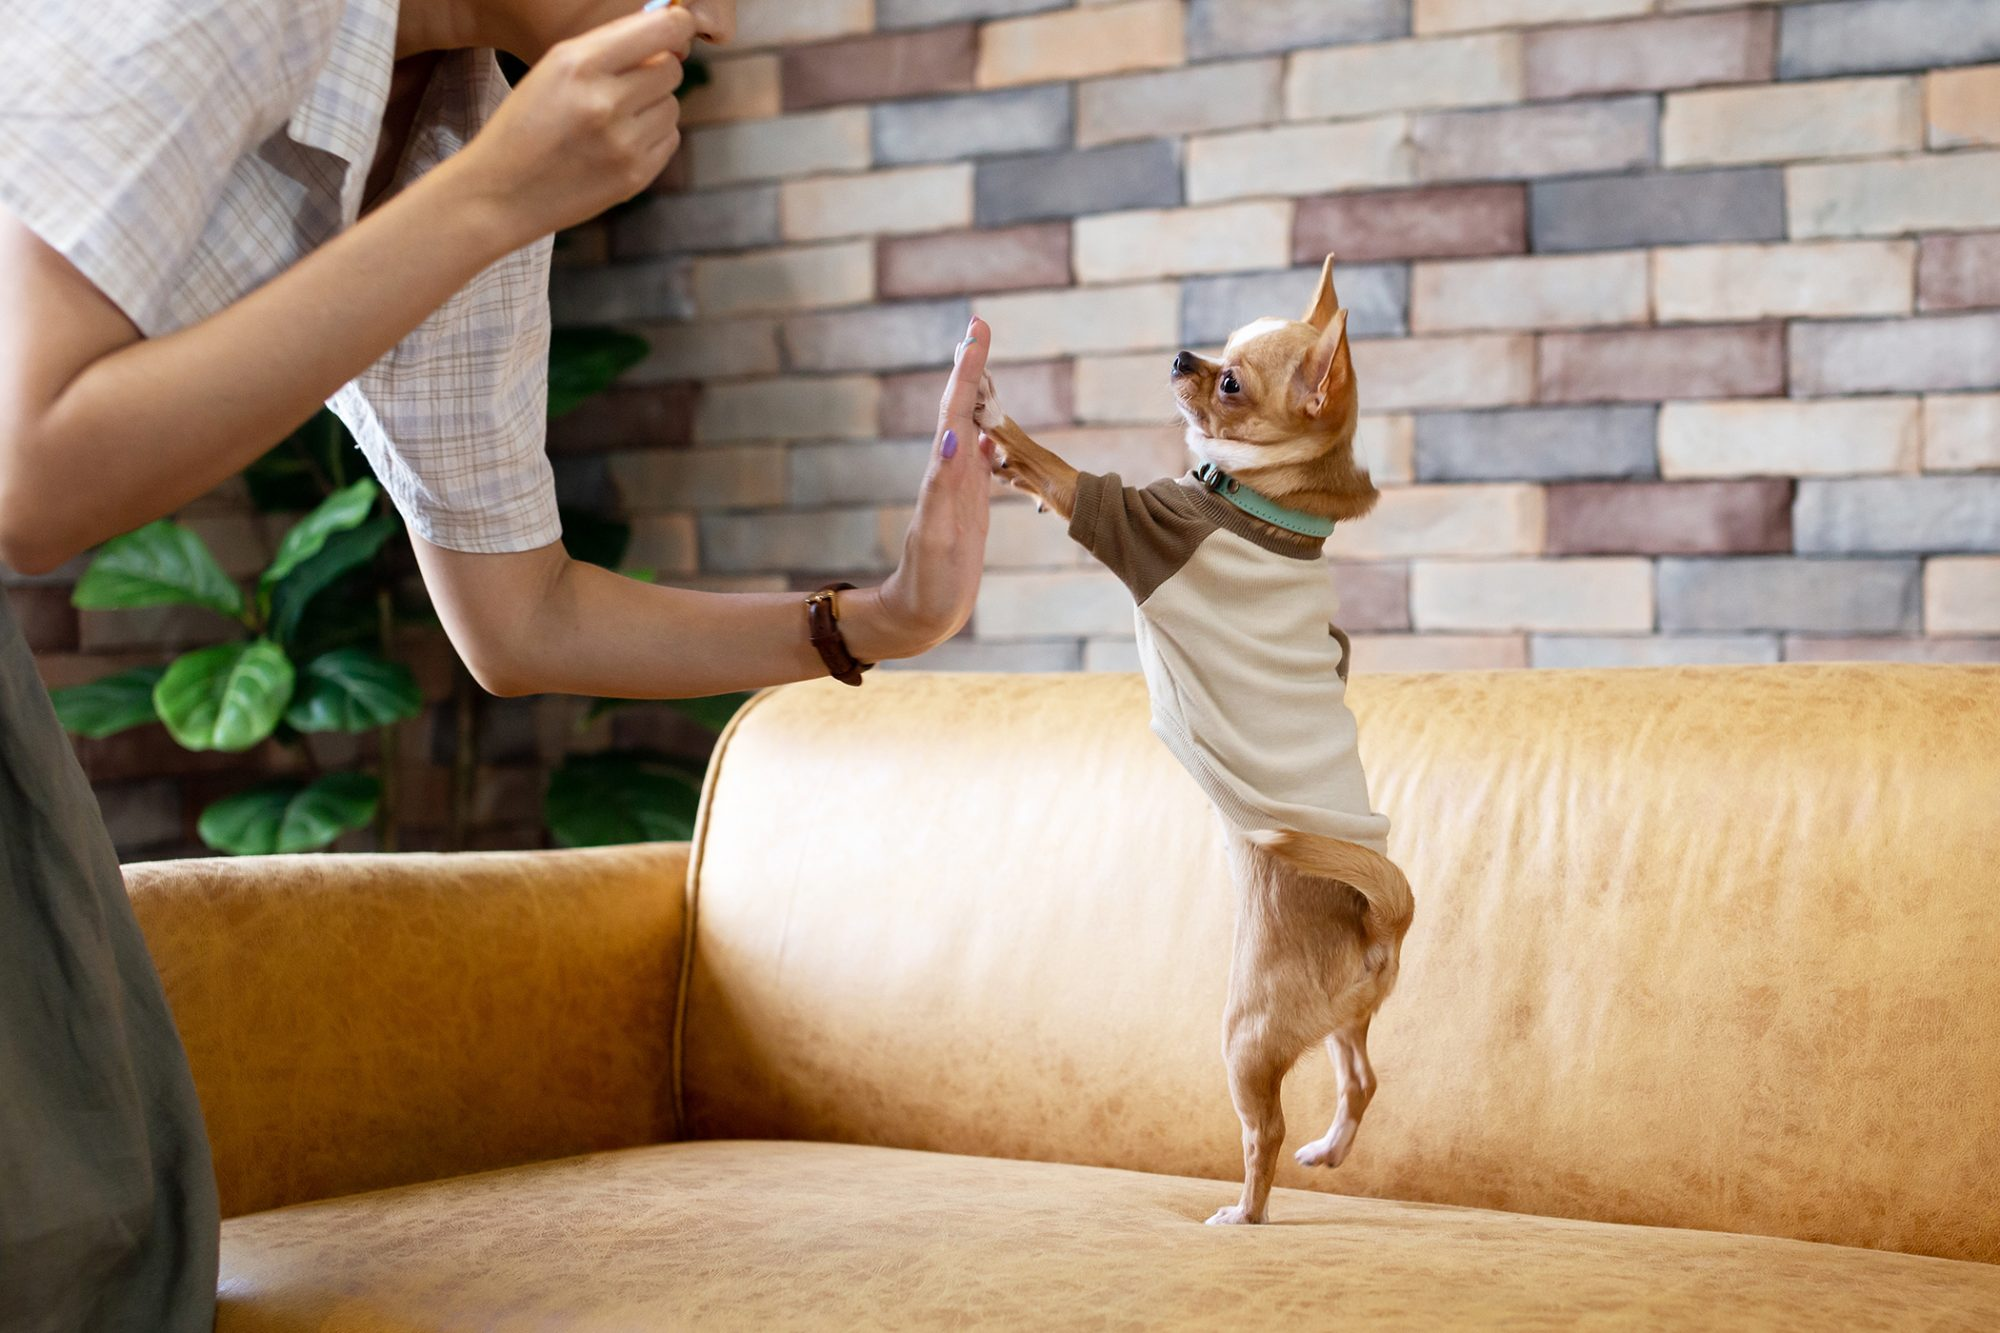 chihuahua and owner high-fiving